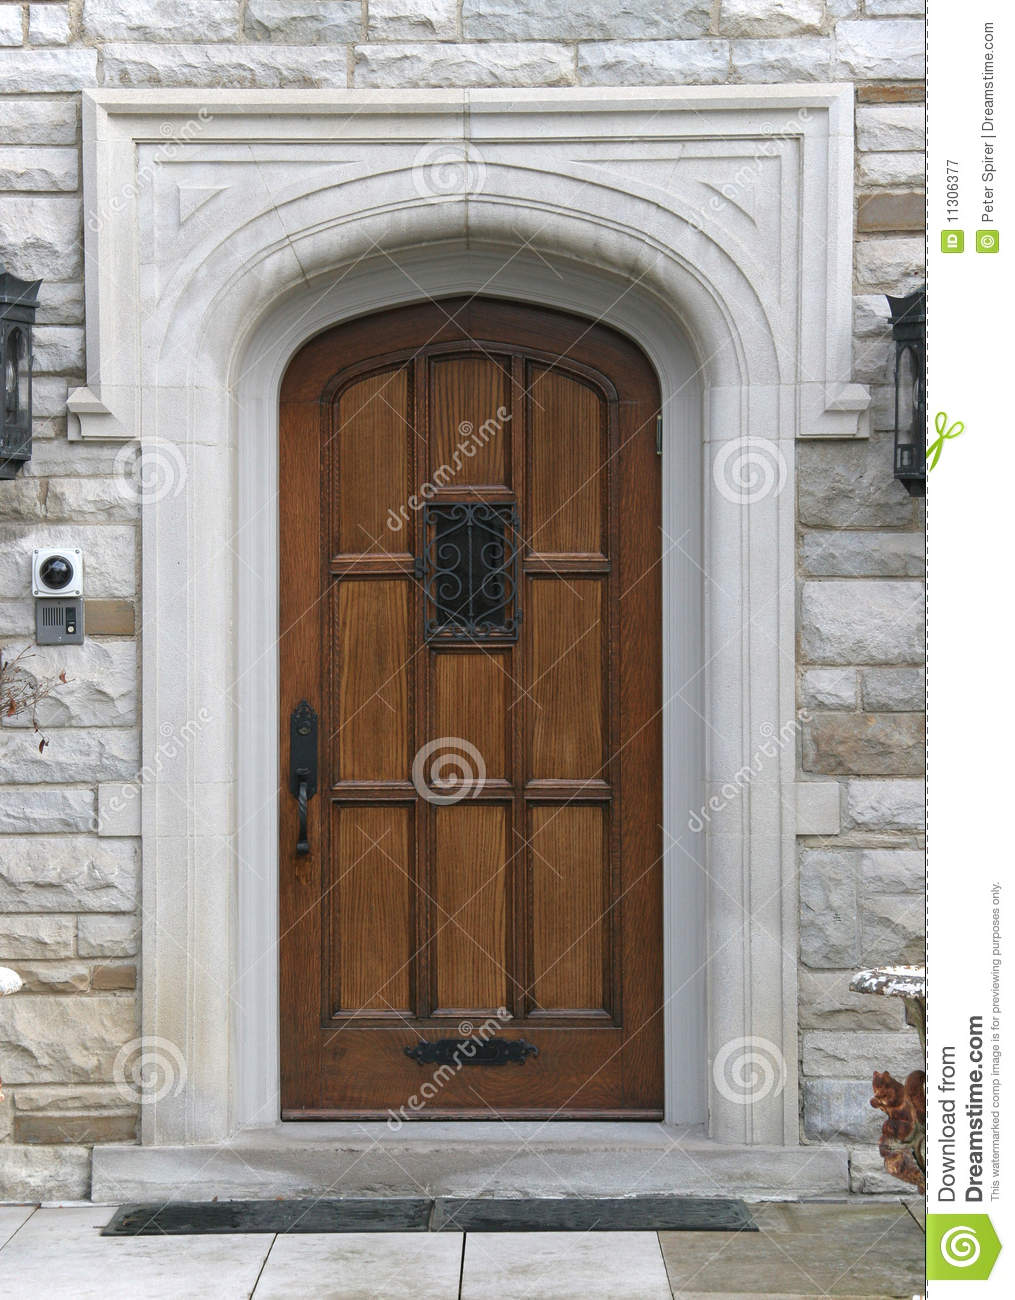 Elegant front door royalty free stock photography image for Elegant front doors